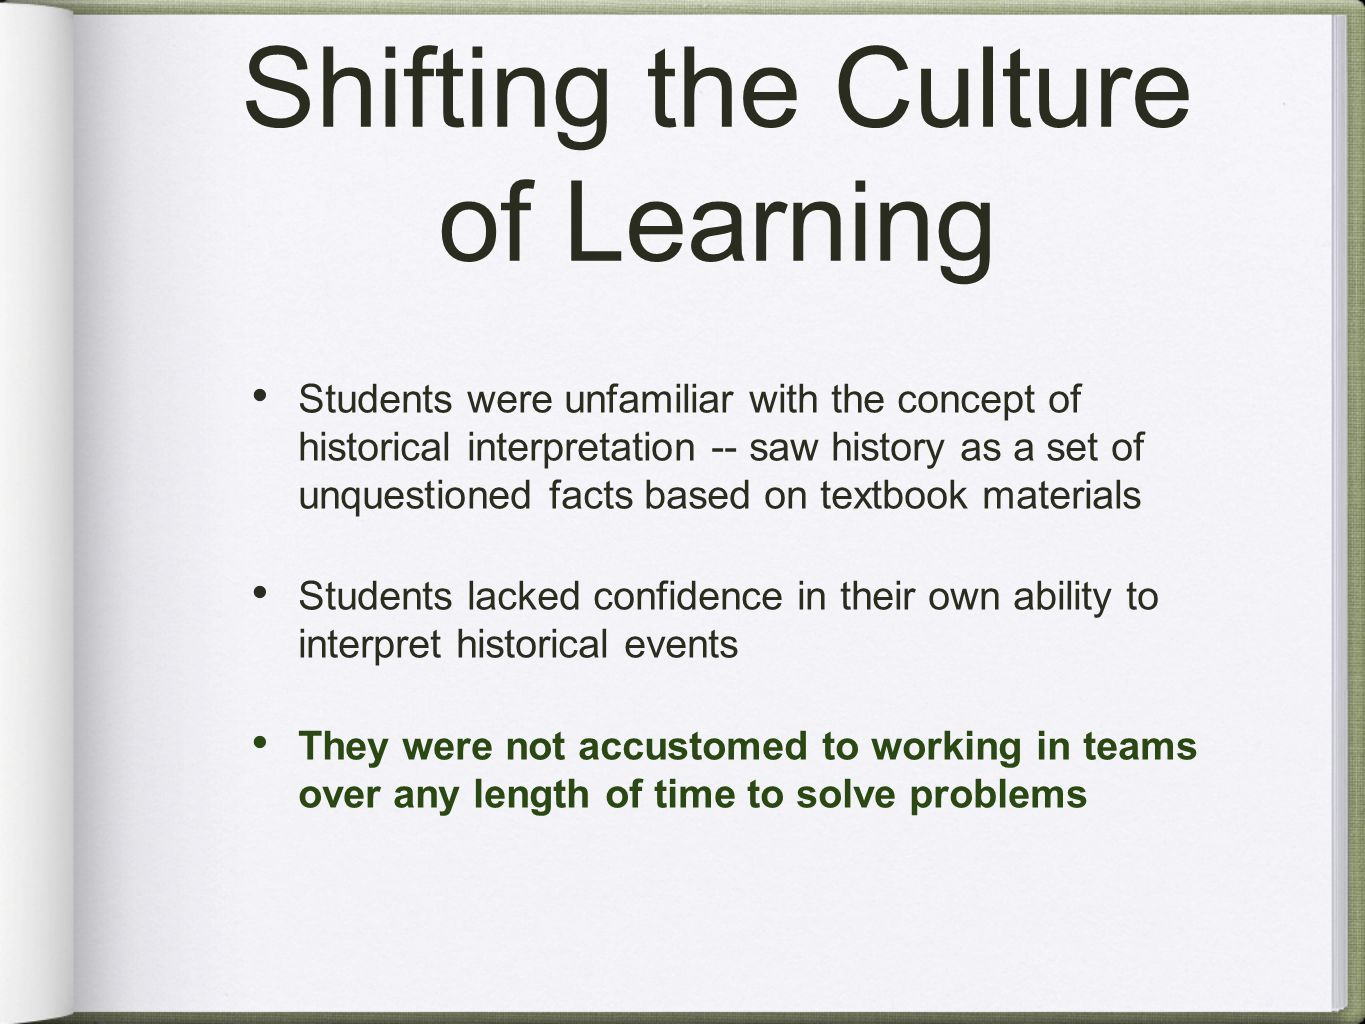 Shifting the Culture of Learning Students were unfamiliar with the concept of historical interpretation -- saw history as a set of unquestioned facts based on textbook materials Students lacked confidence in their own ability to interpret historical events They were not accustomed to working in teams over any length of time to solve problems